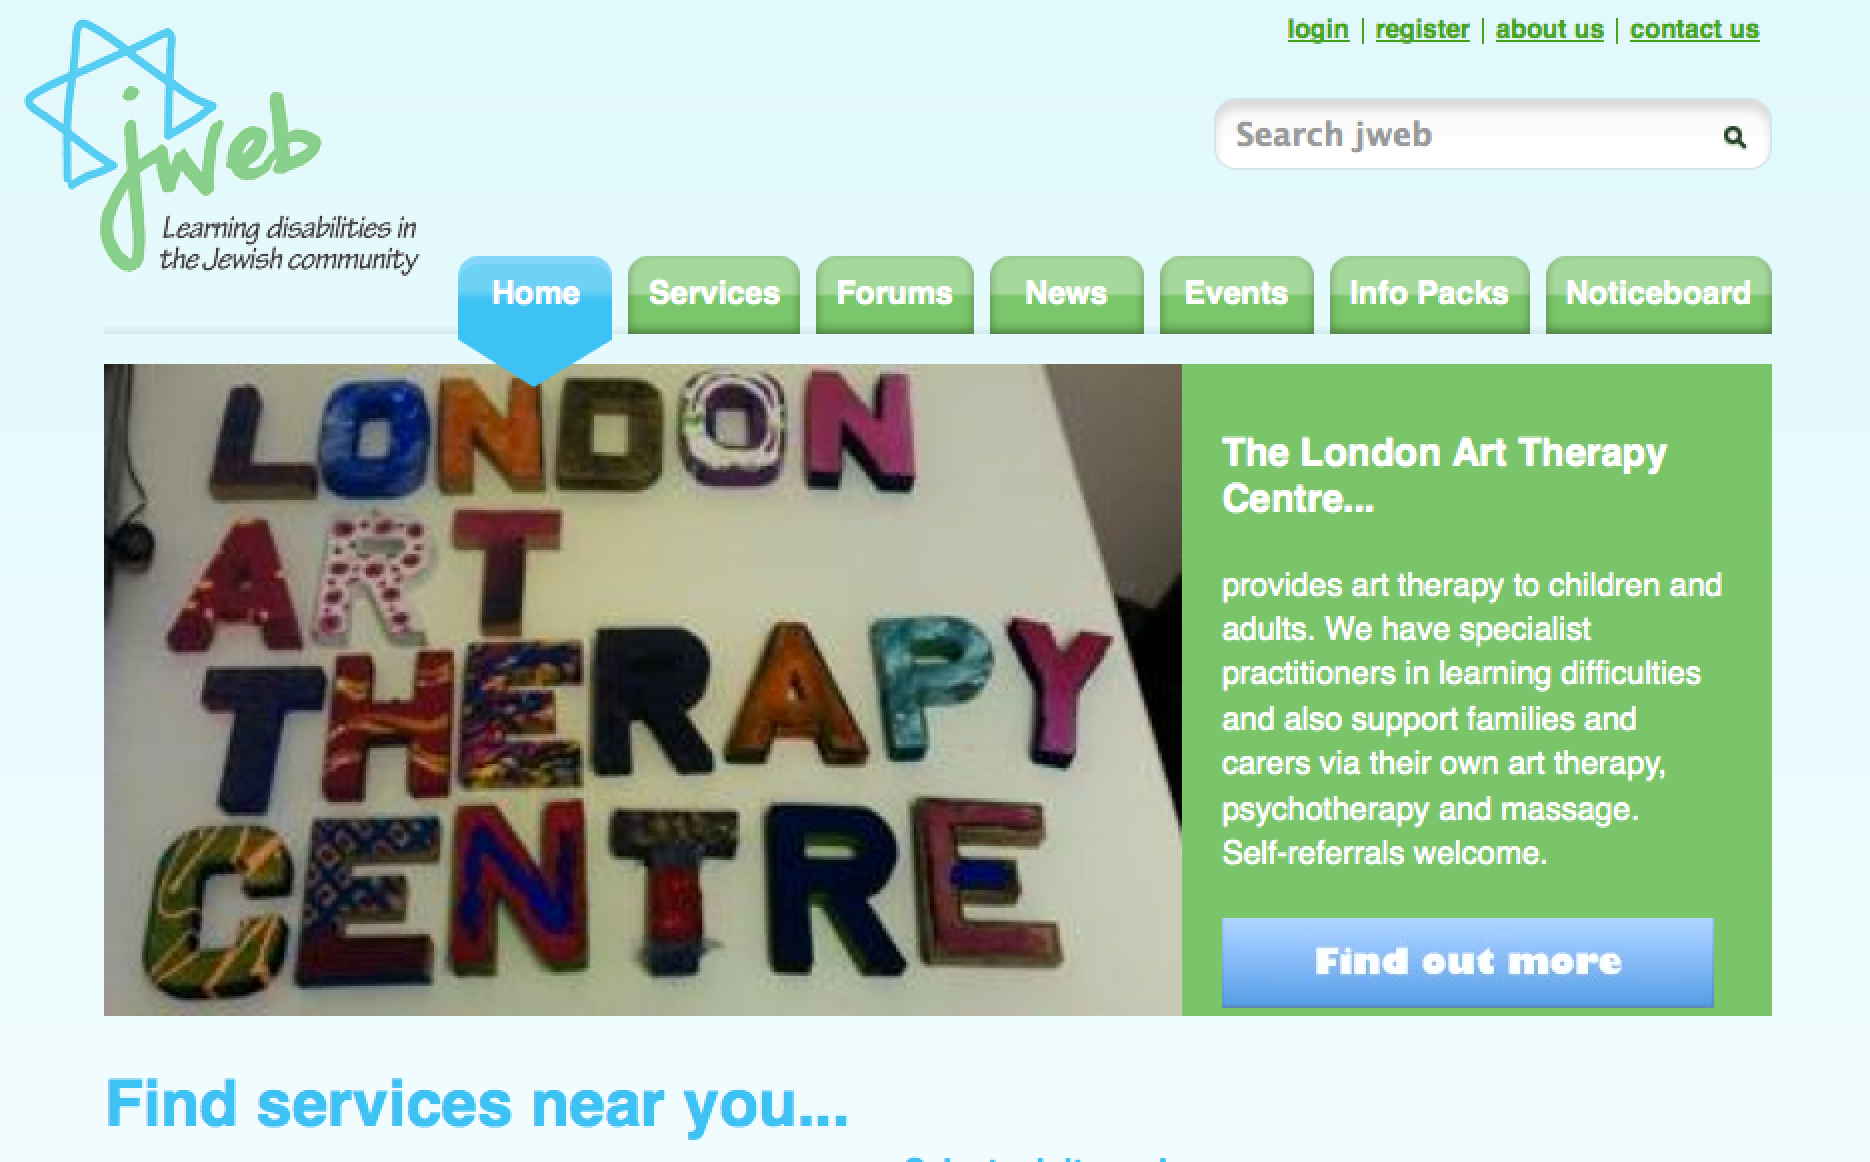 London Art Therapy Centre on jweb